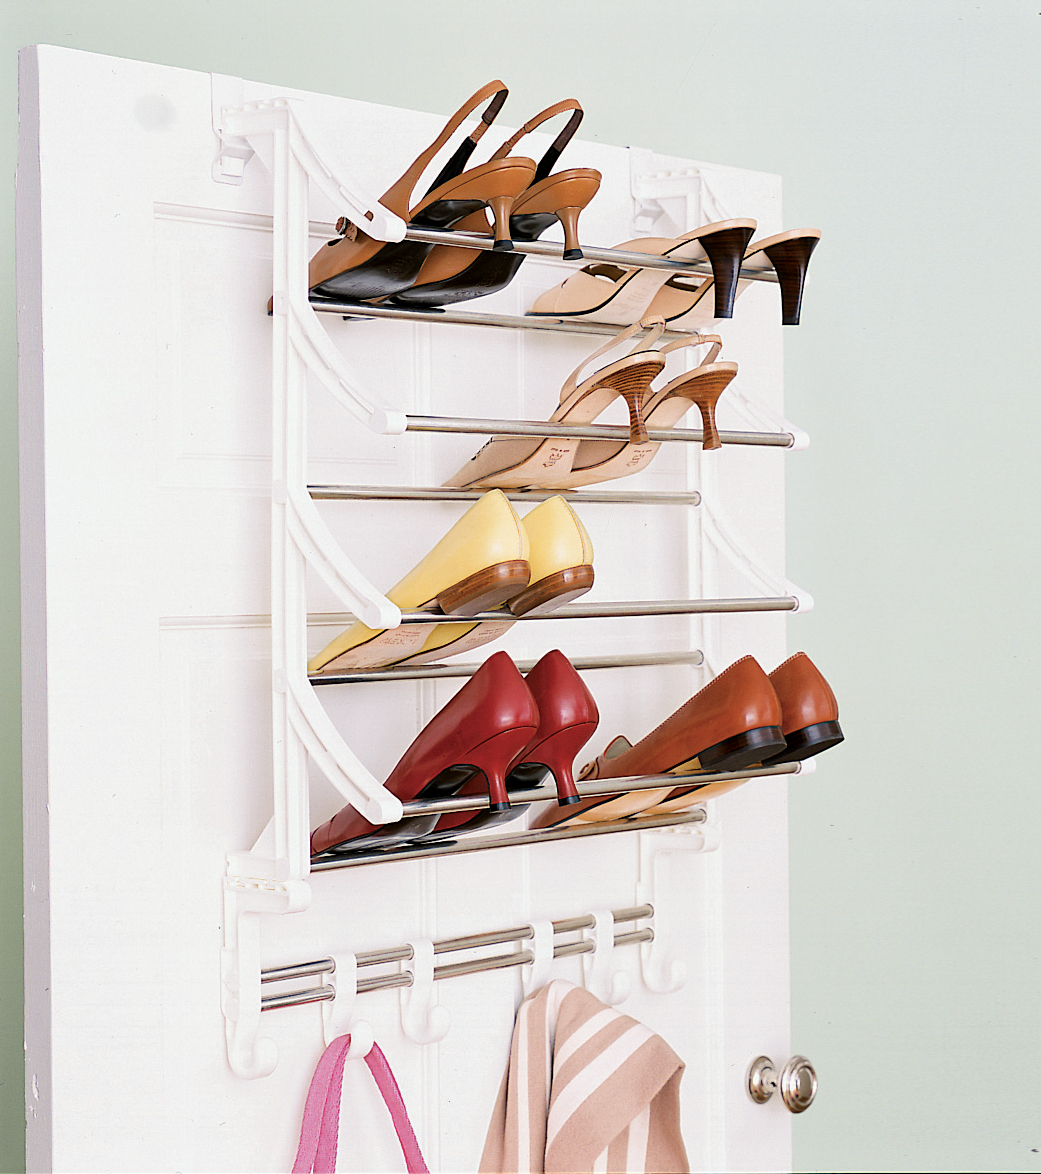 Closet over-the-door shoe rack